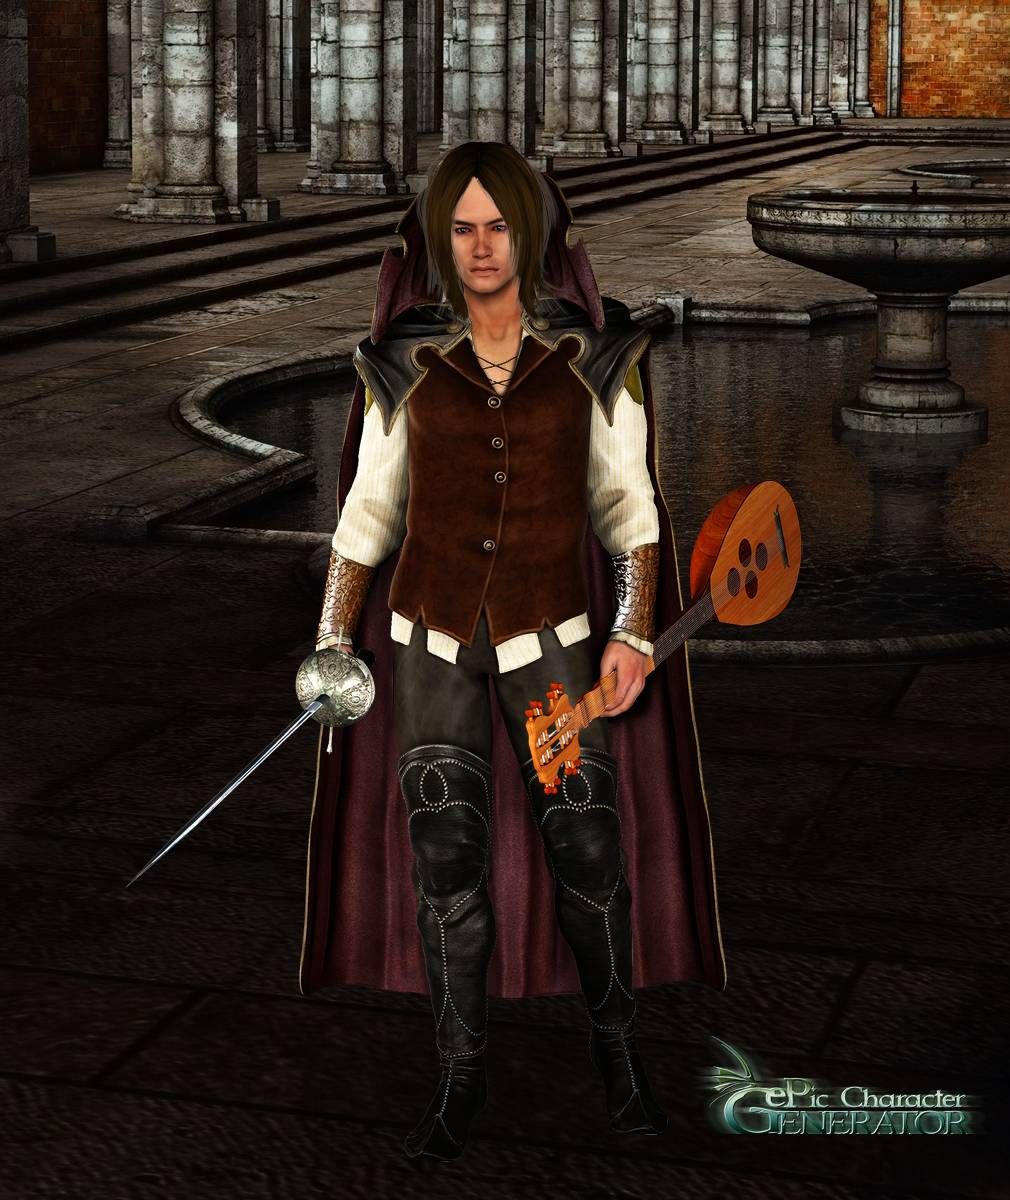 ePic Character Generator Season 2 Male Adventurer Screenshot 11